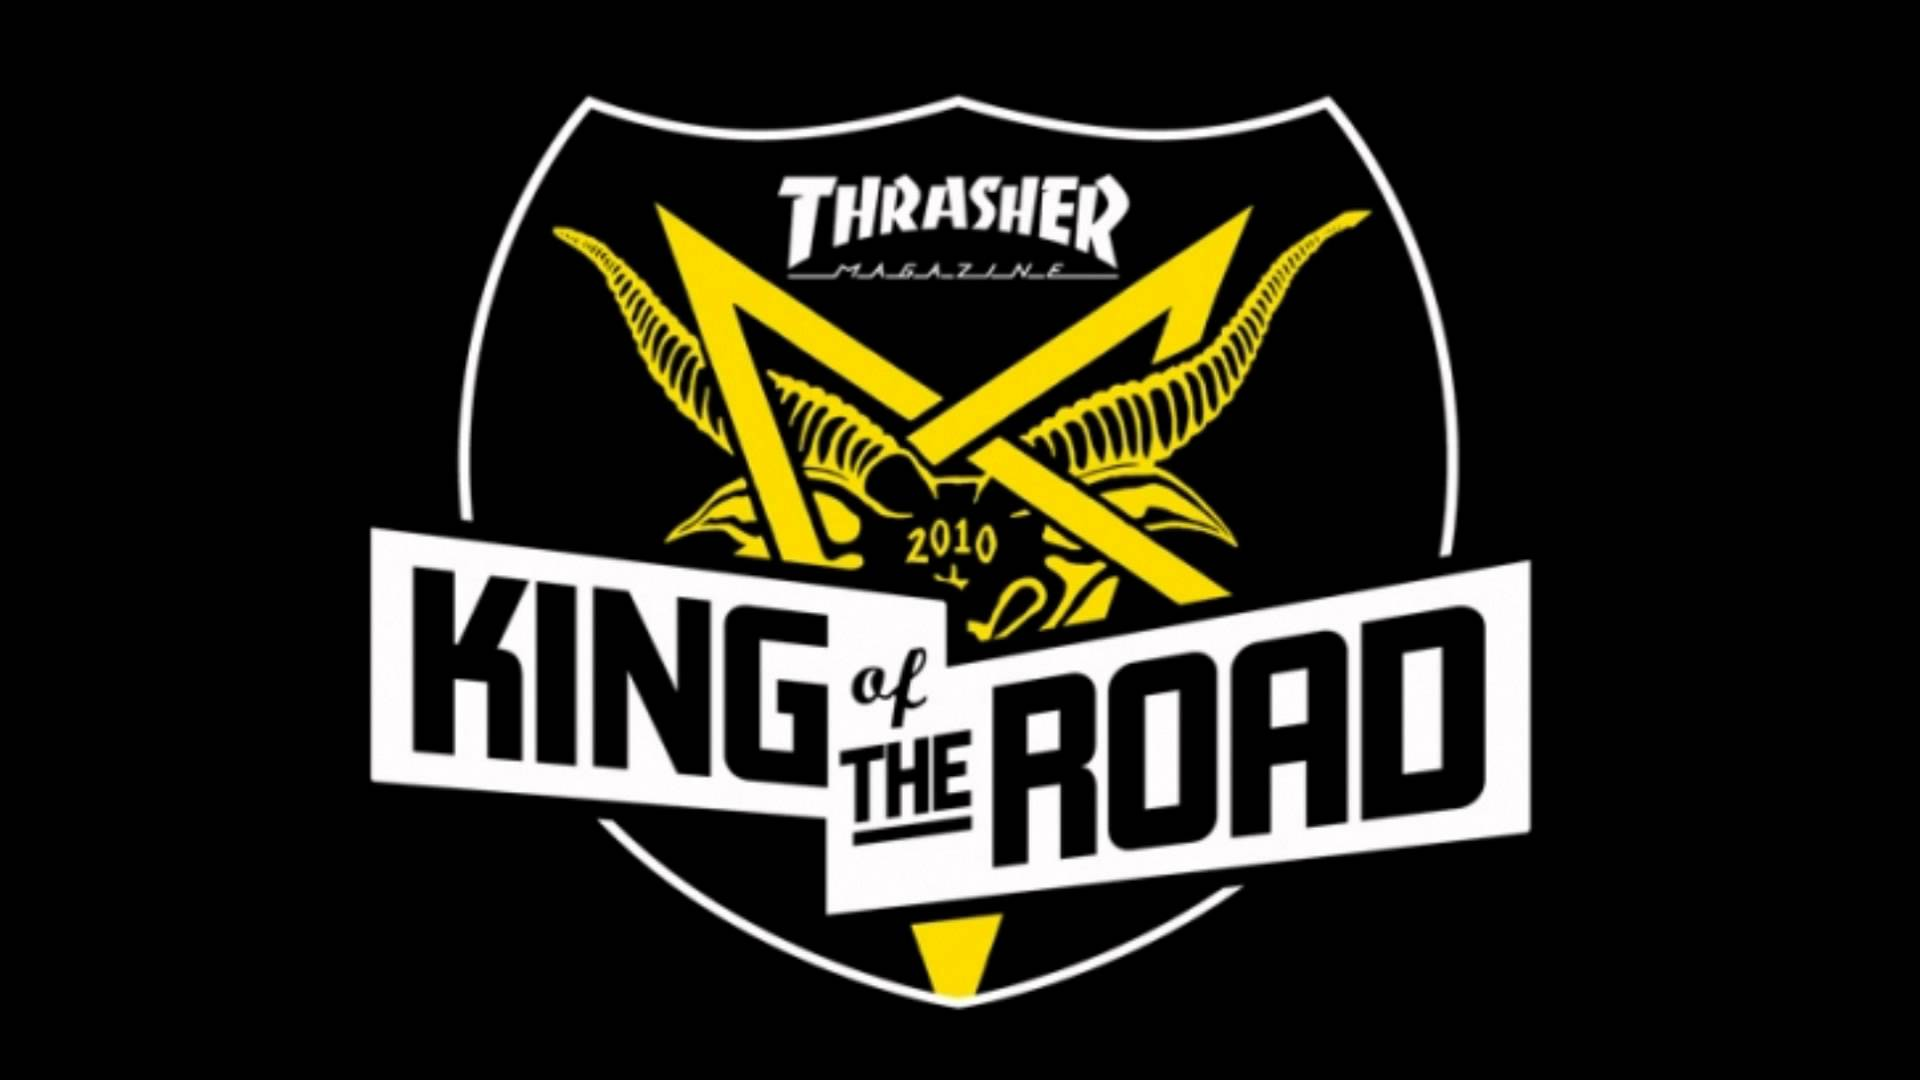 Free Download Thrasher Magazine Backgrounds